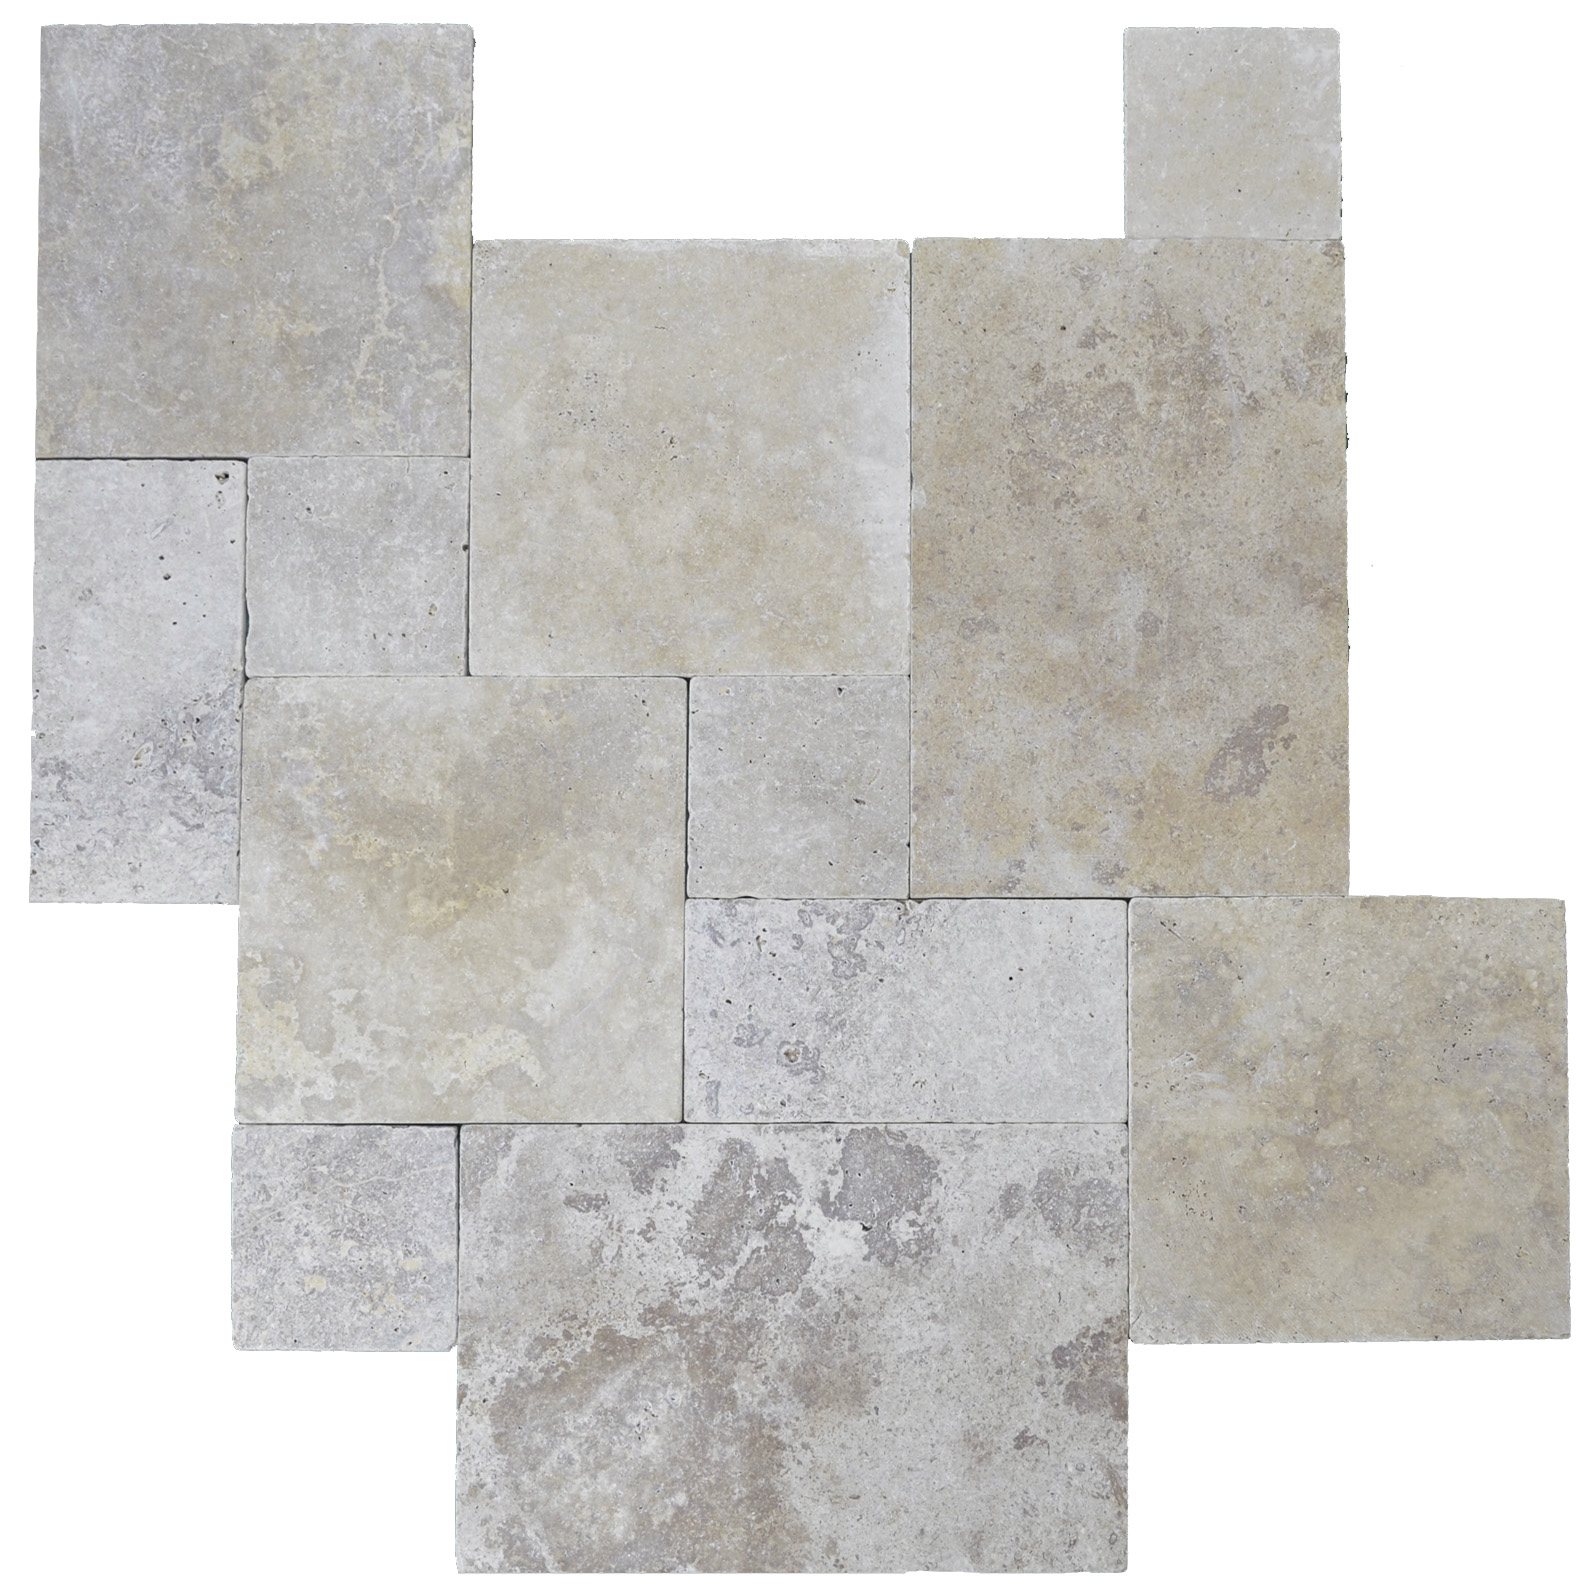 Walnut tumbled french pattern travertine tiles atlantic stone source walnut tumbled french pattern travertine tiles travertine tiles sale atlantic stone source dailygadgetfo Image collections